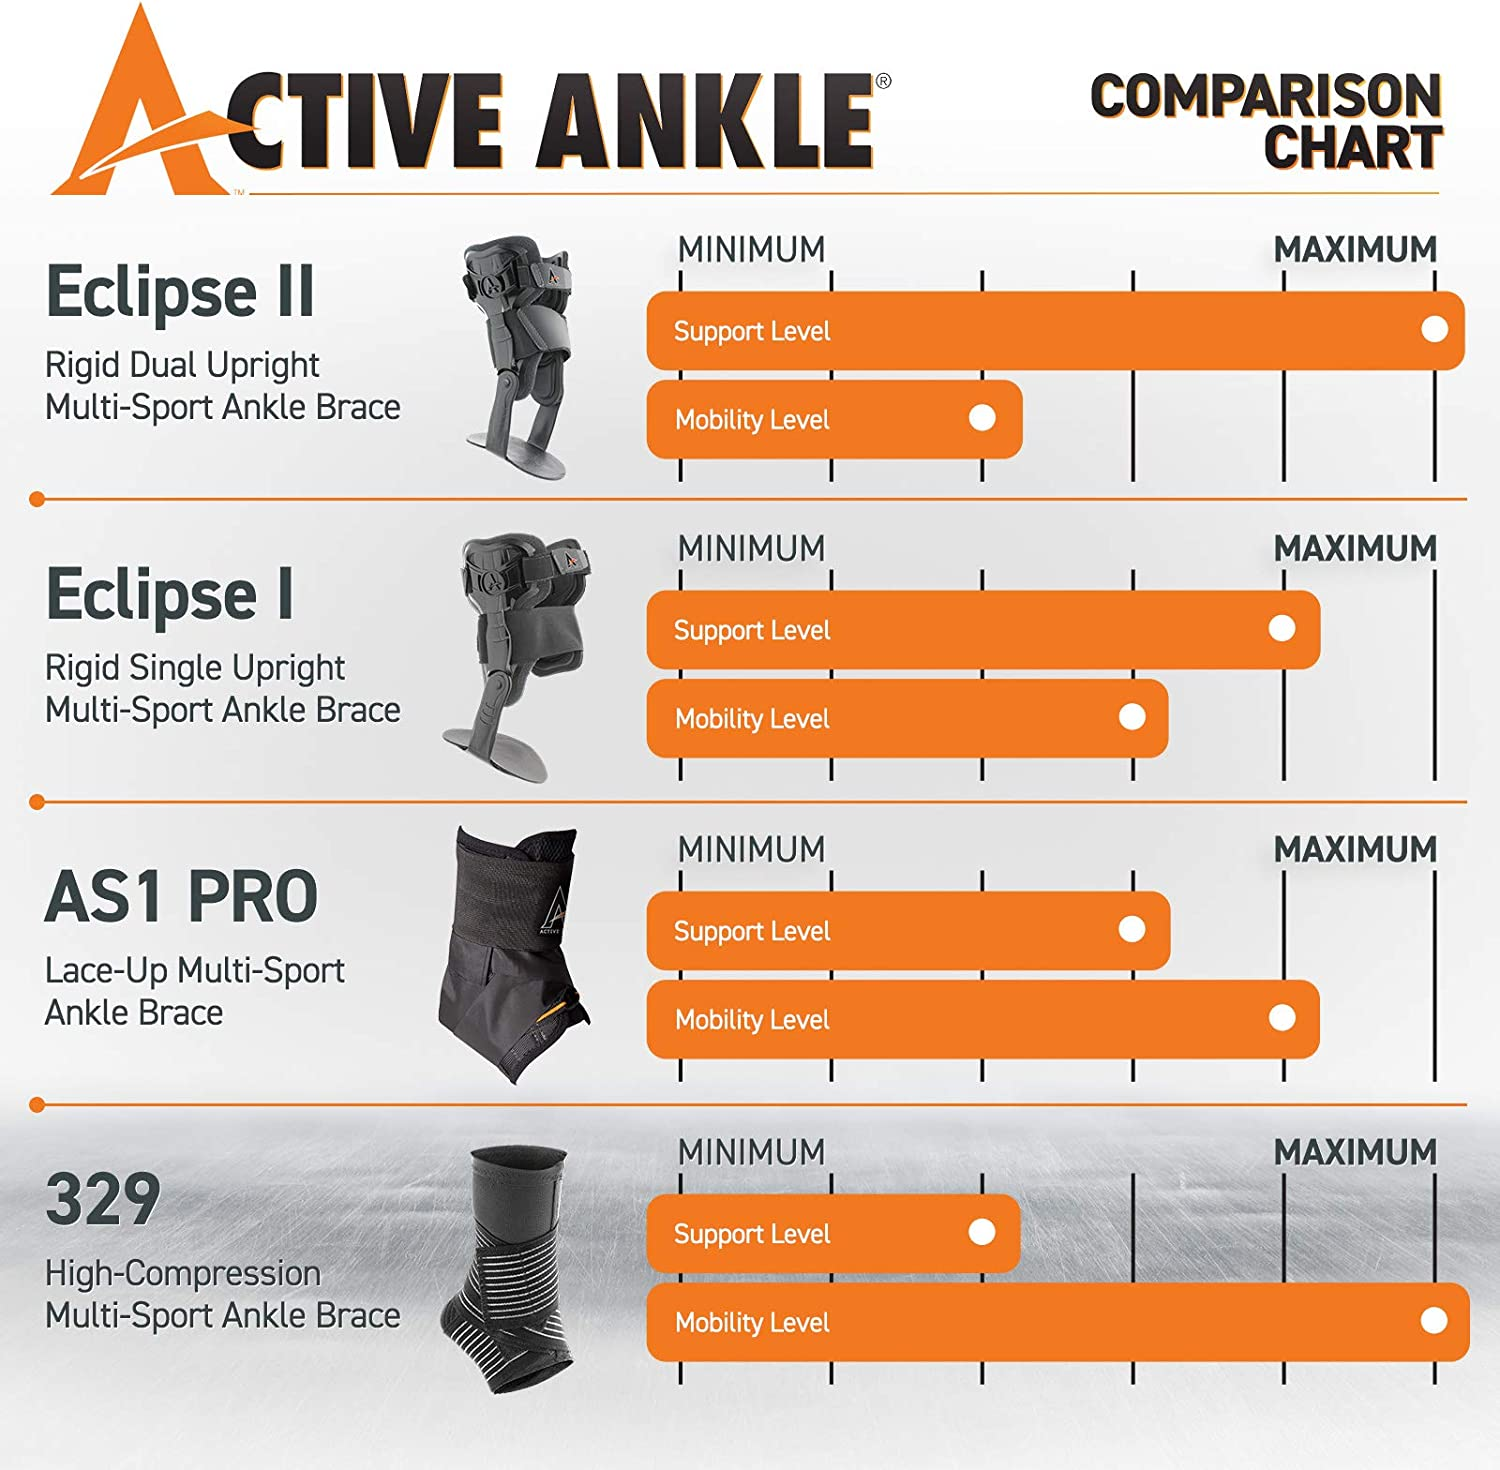 Rigid Stabilizer for Protection /& Sprain Support for Volleyball Active Ankle Eclipse II Ankle Brace Various Sizes Ankle Braces to Wear Over Compression Socks or Sleeves Football Baseball